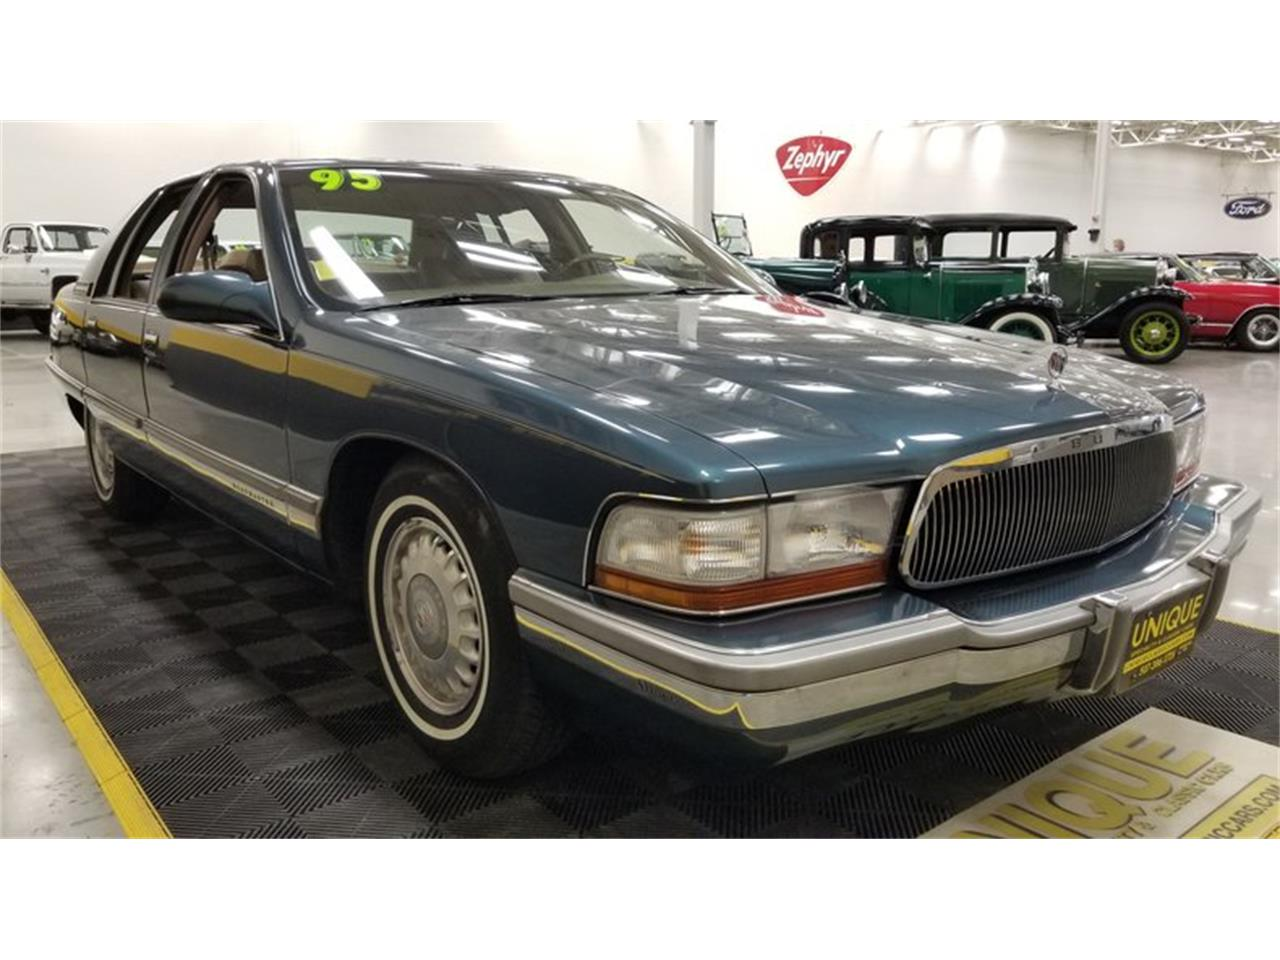 1995 buick roadmaster for sale classiccars com cc 1374103 1995 buick roadmaster for sale